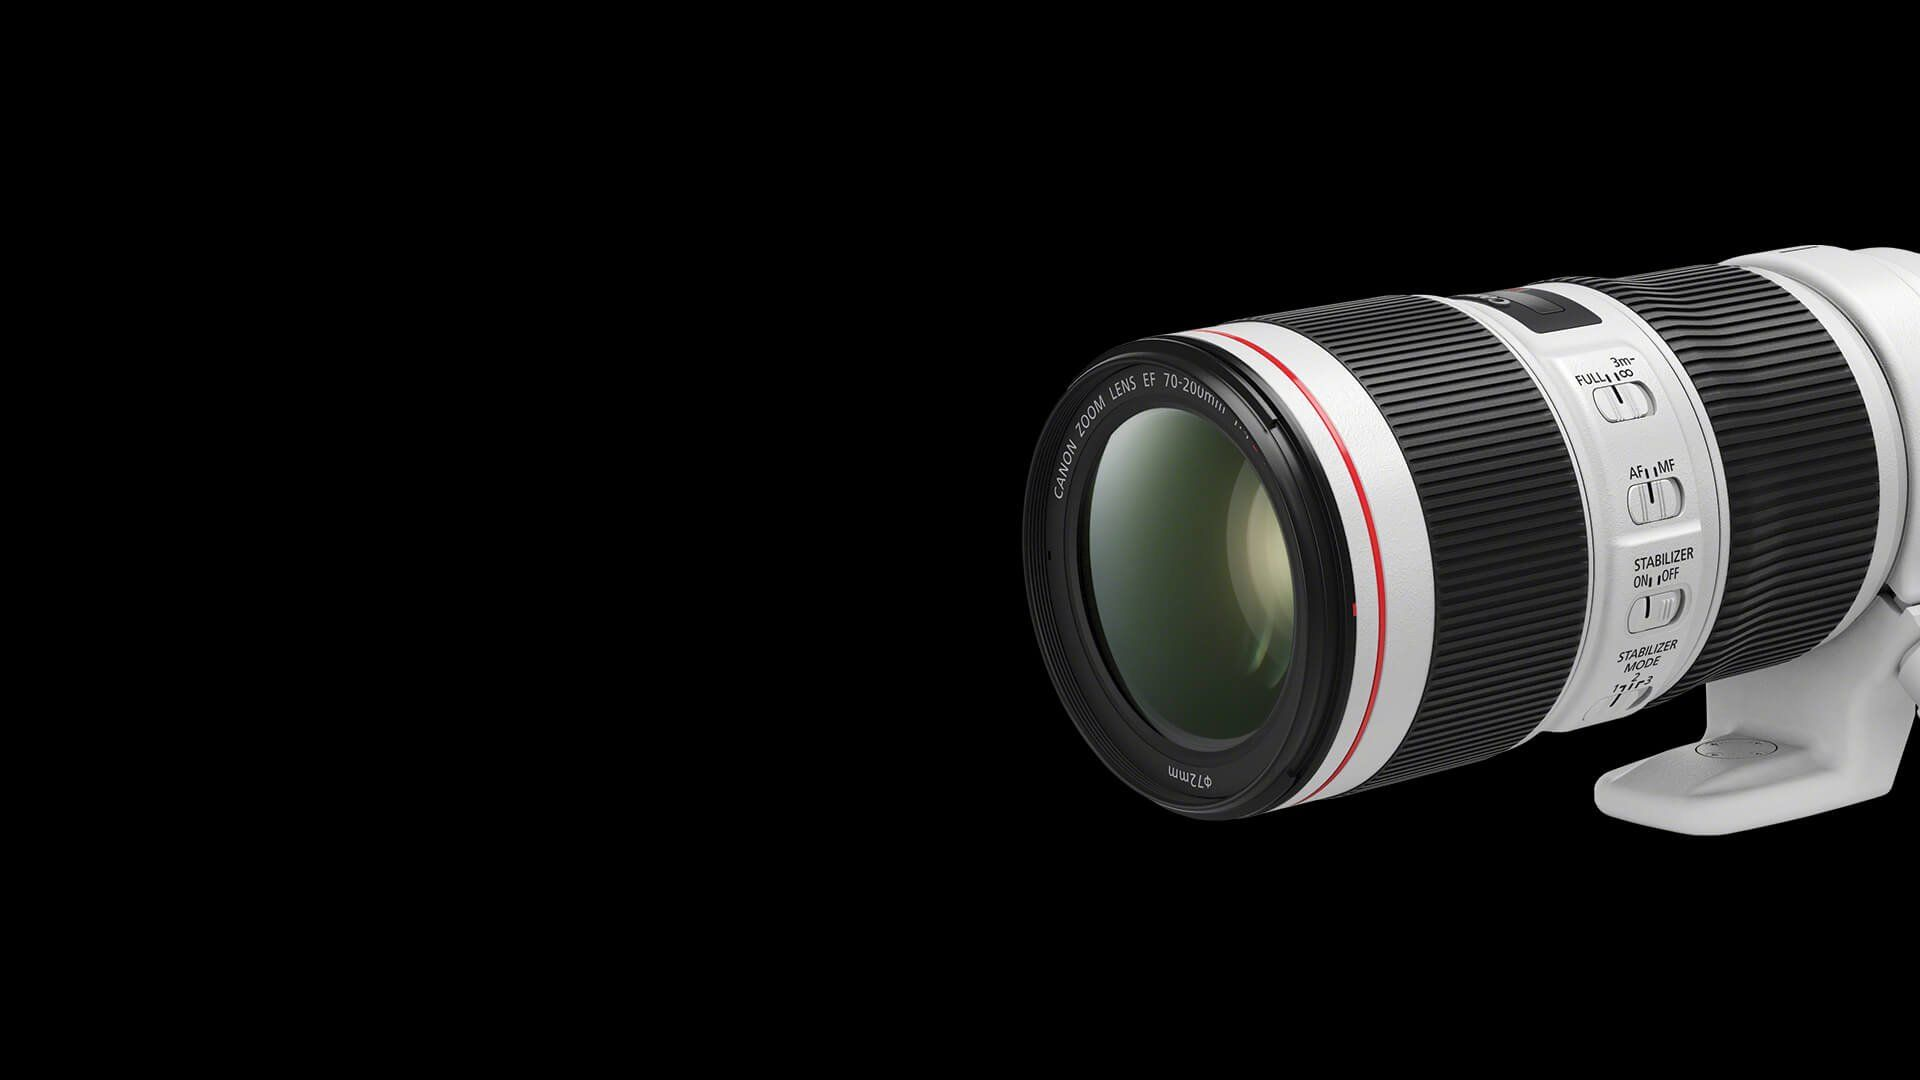 EF 70-200mm f/4L IS II USM Hero